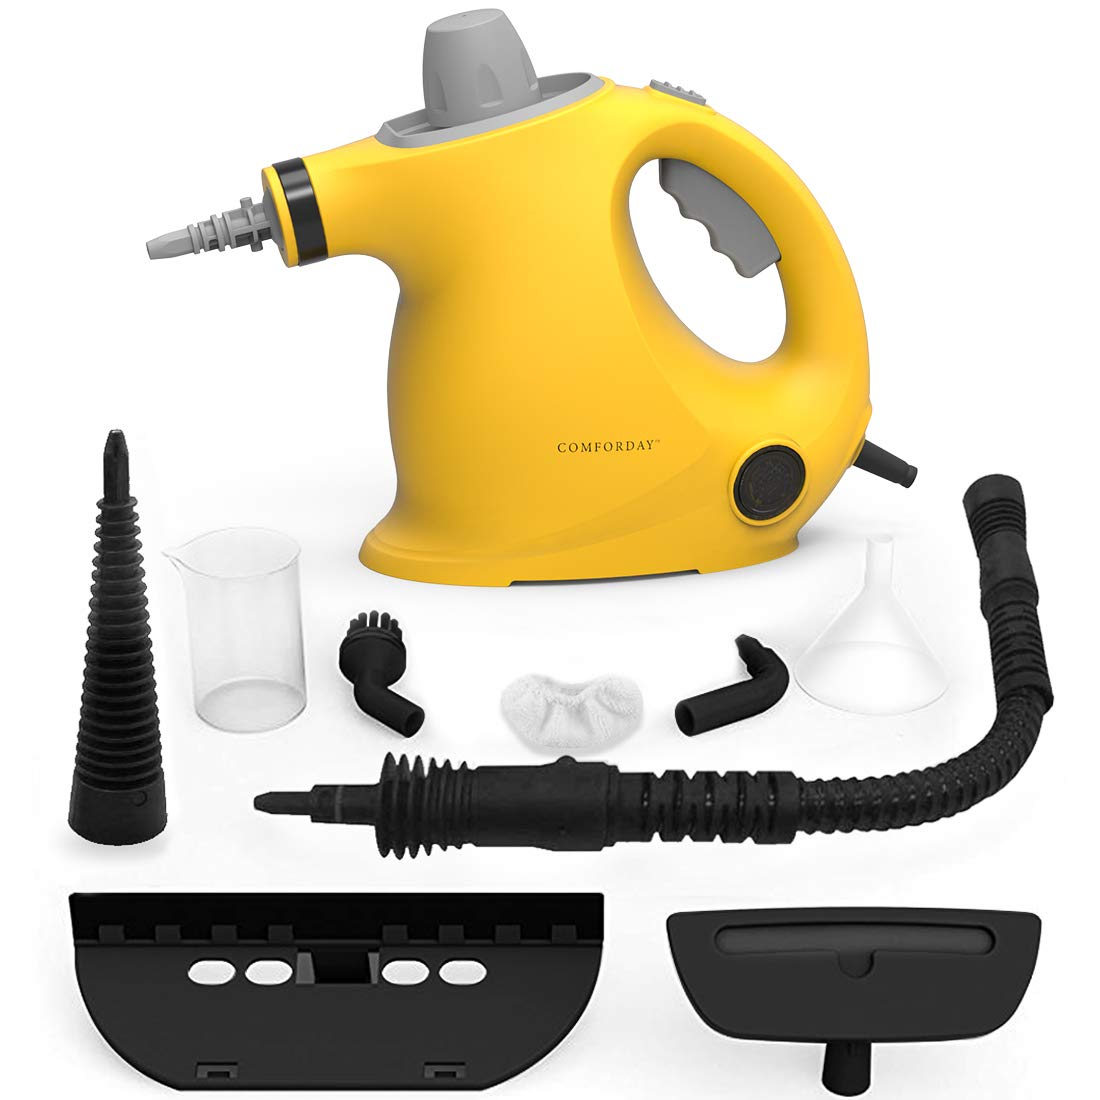 Comforday Multi-Purpose Handheld Pressurized Steam Cleaner with 9-Piece Accessories for Stain Removal, Steamer, Carpets, Curtains, Car Seats, Kitchen Surface & Much More, Yellow